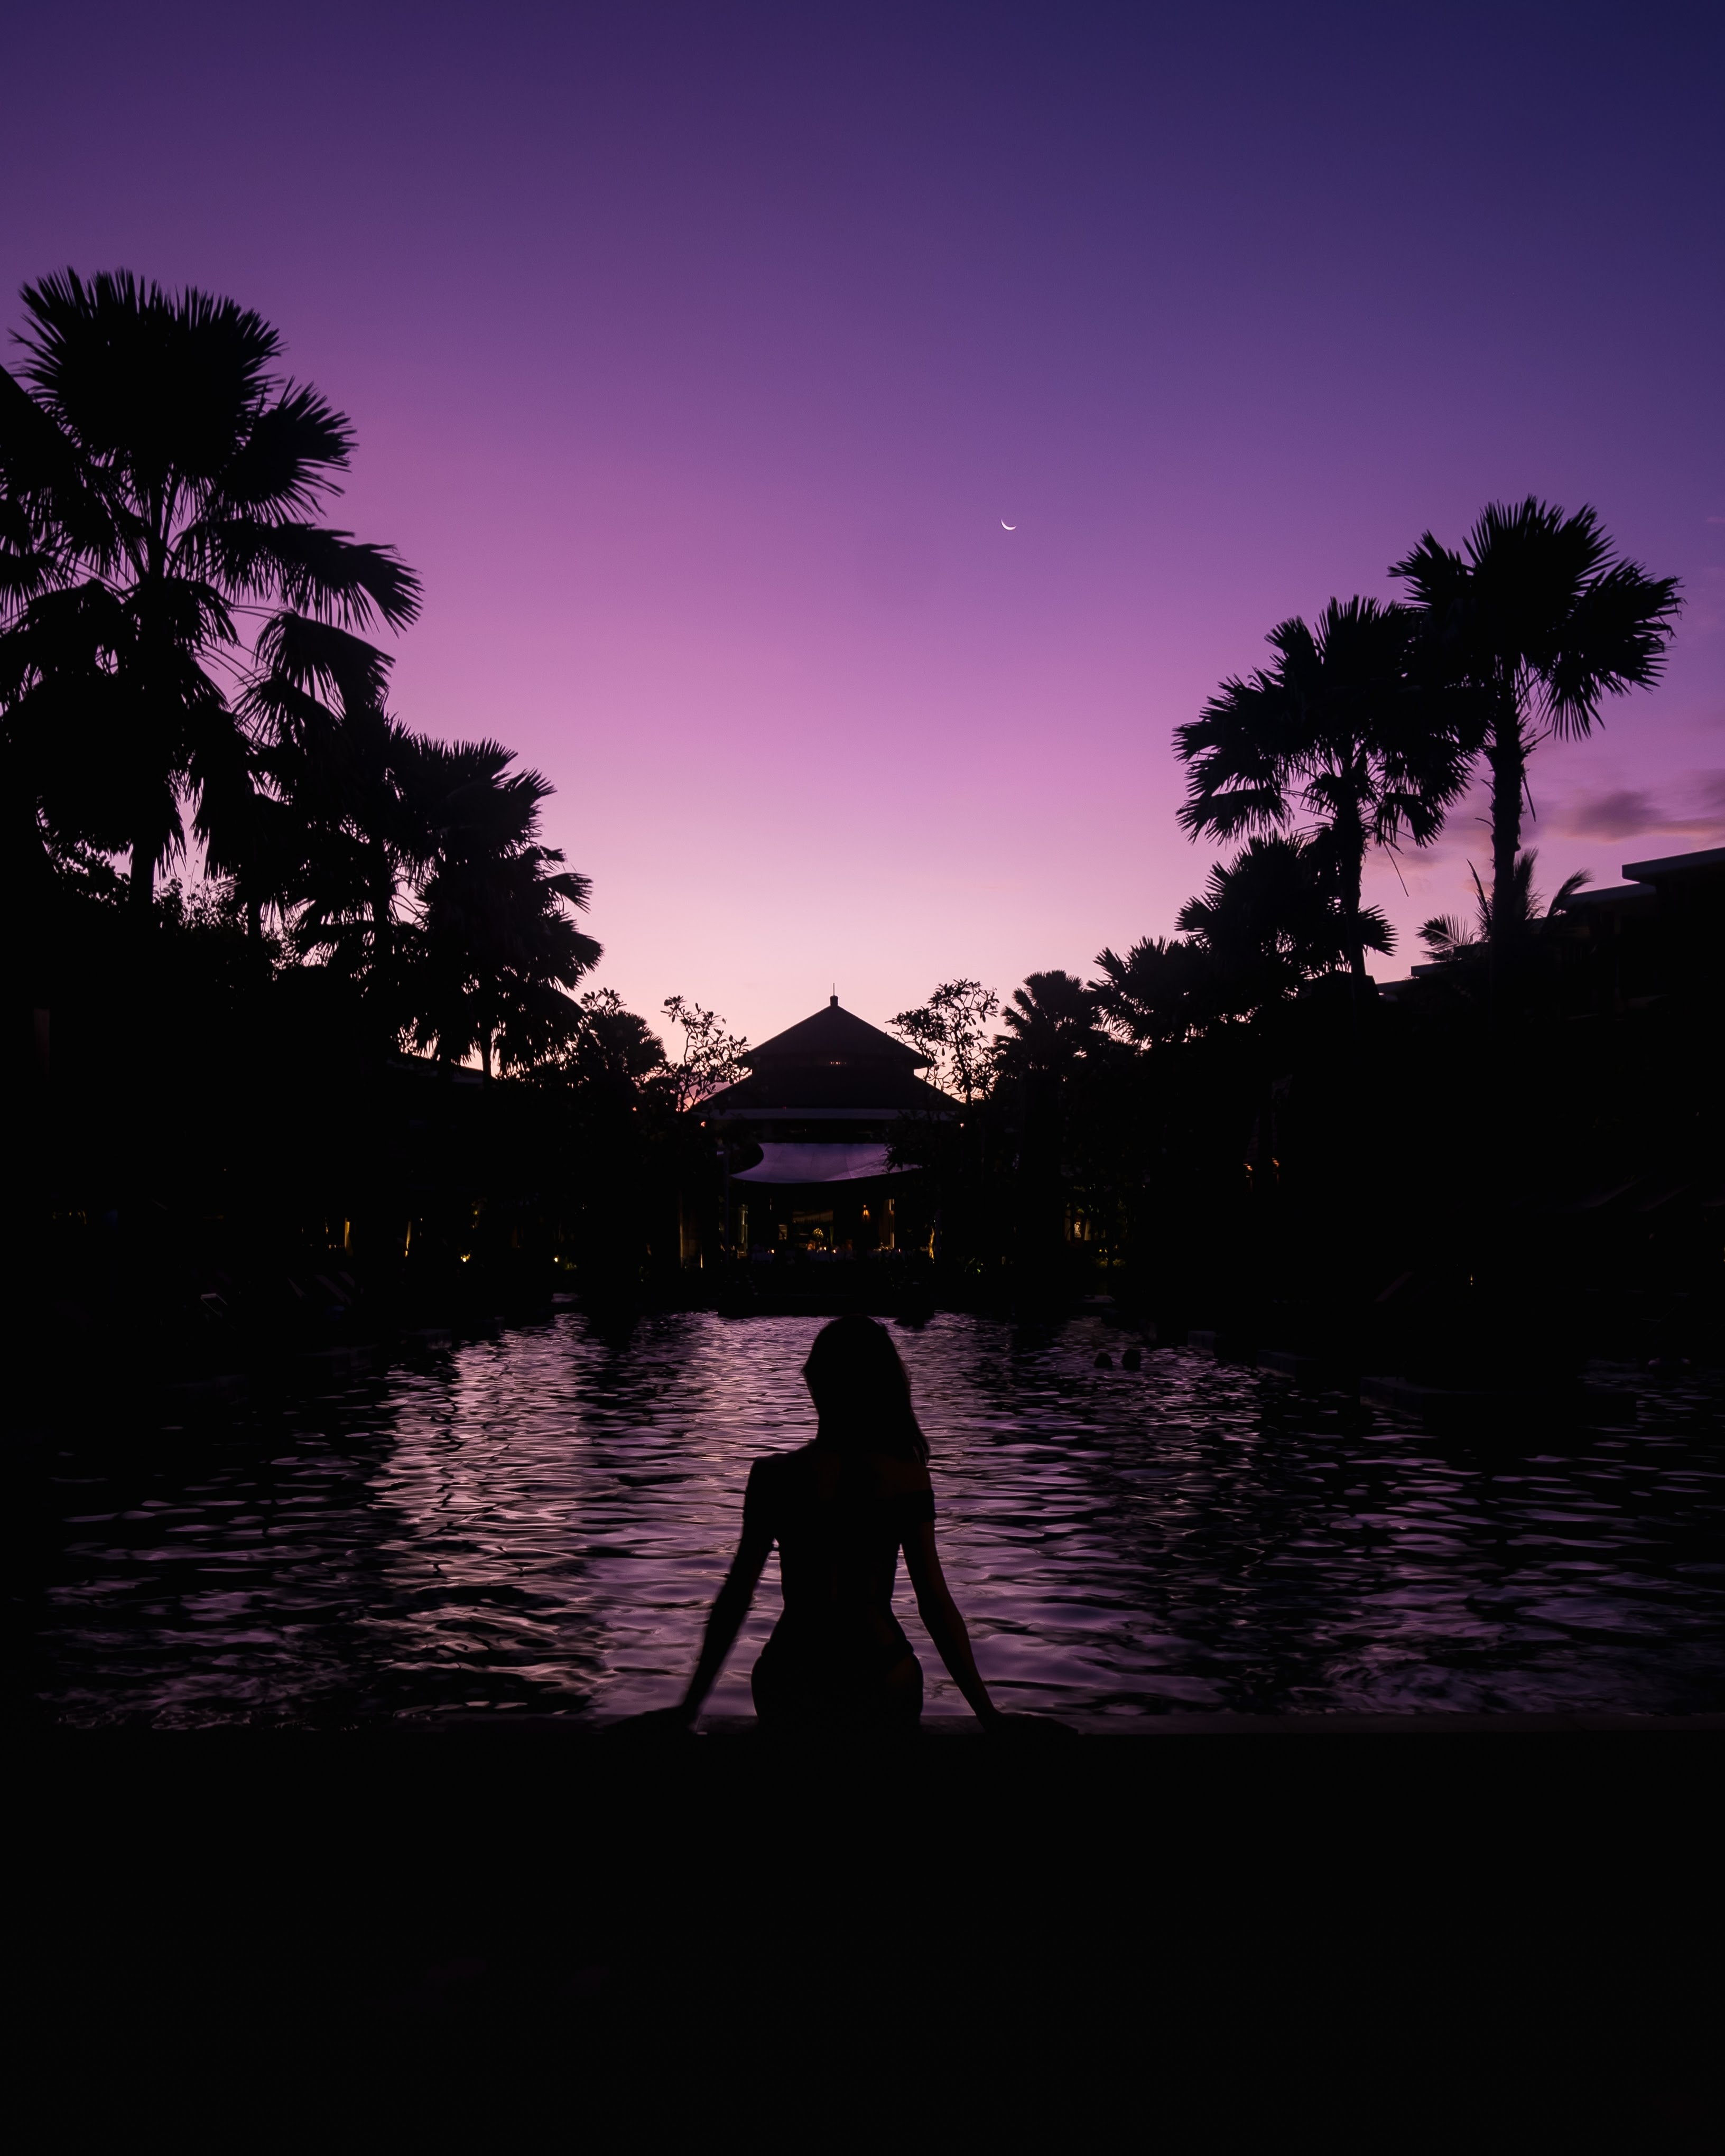 silhouette of woman sitting on edge of the pool during nighttime